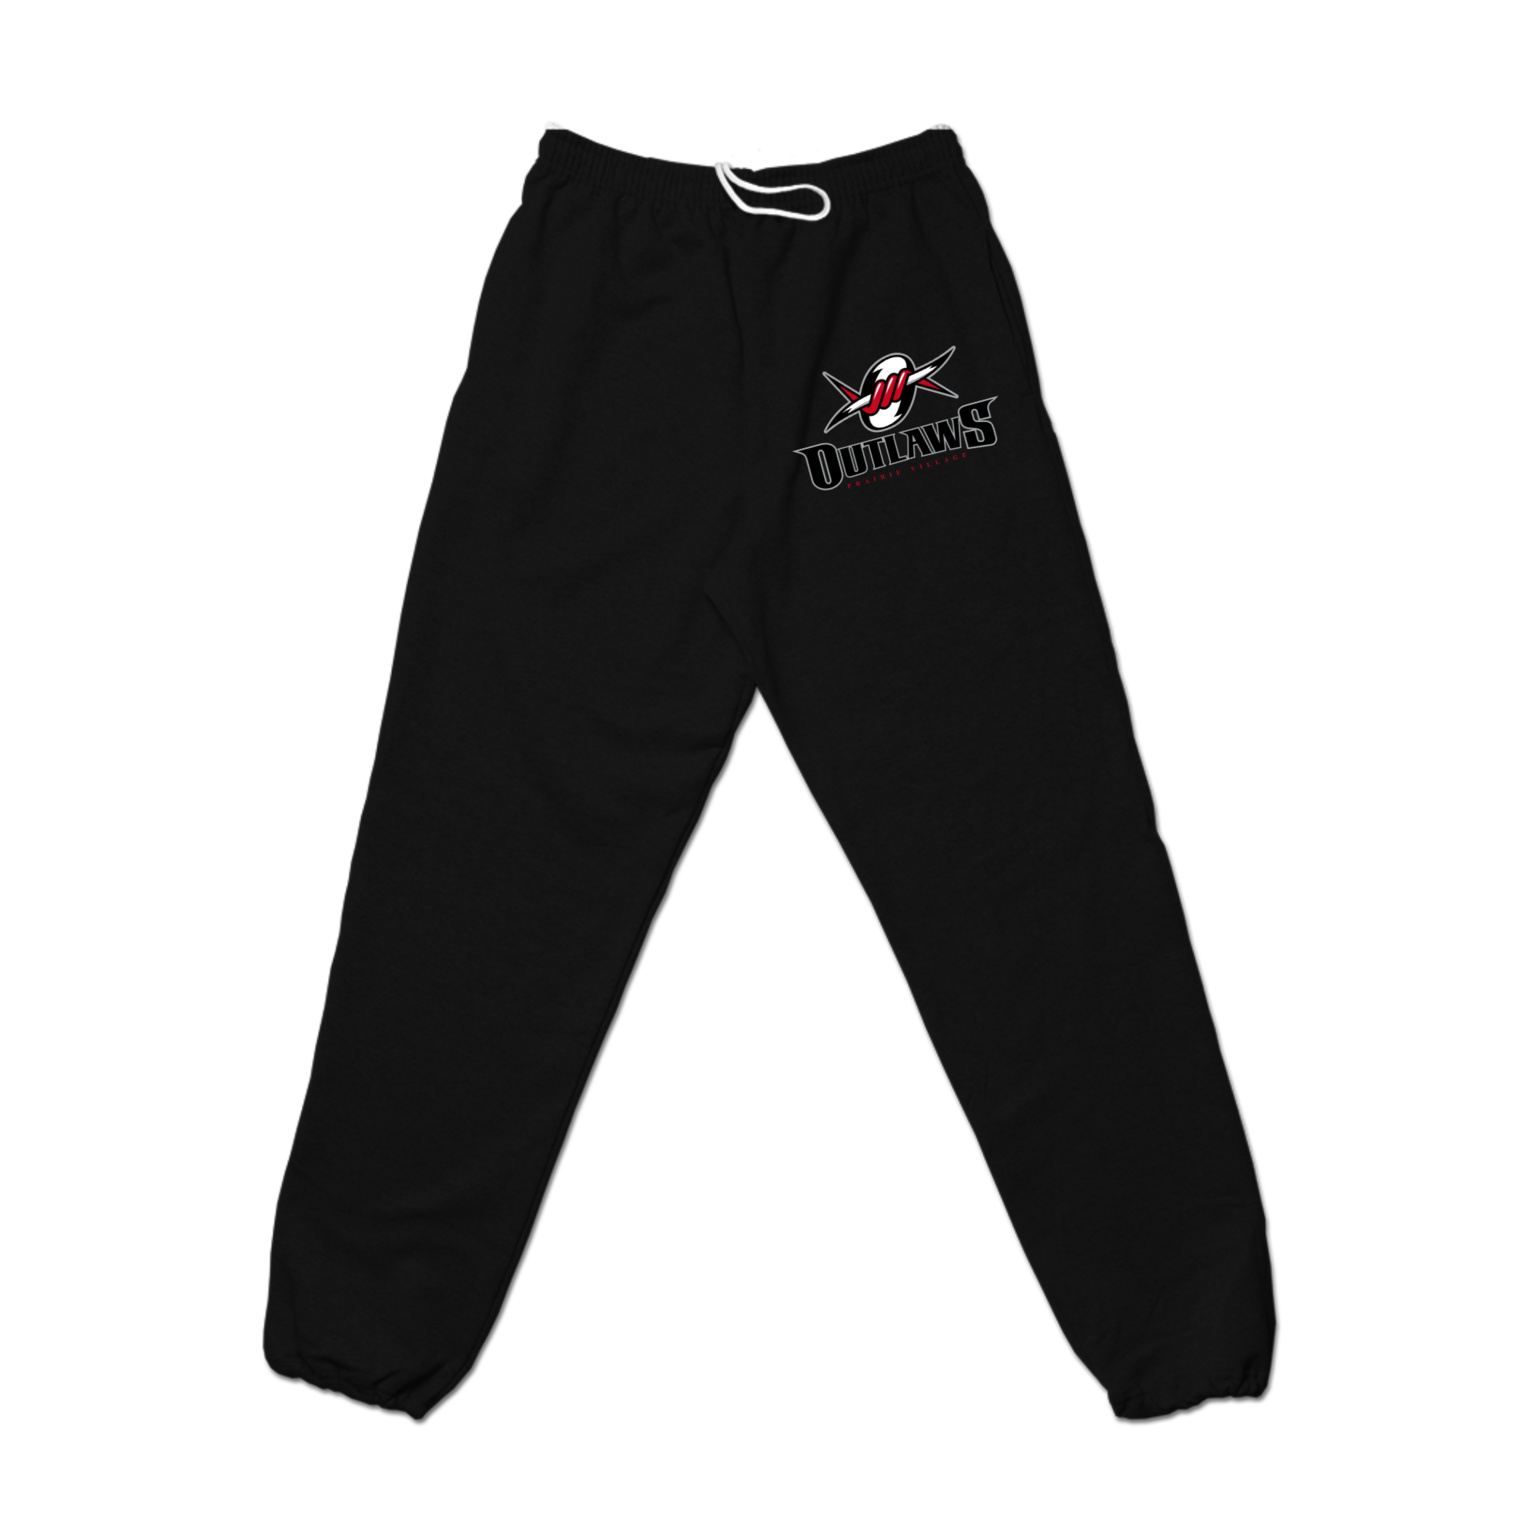 PV Outlaws Sweatpant